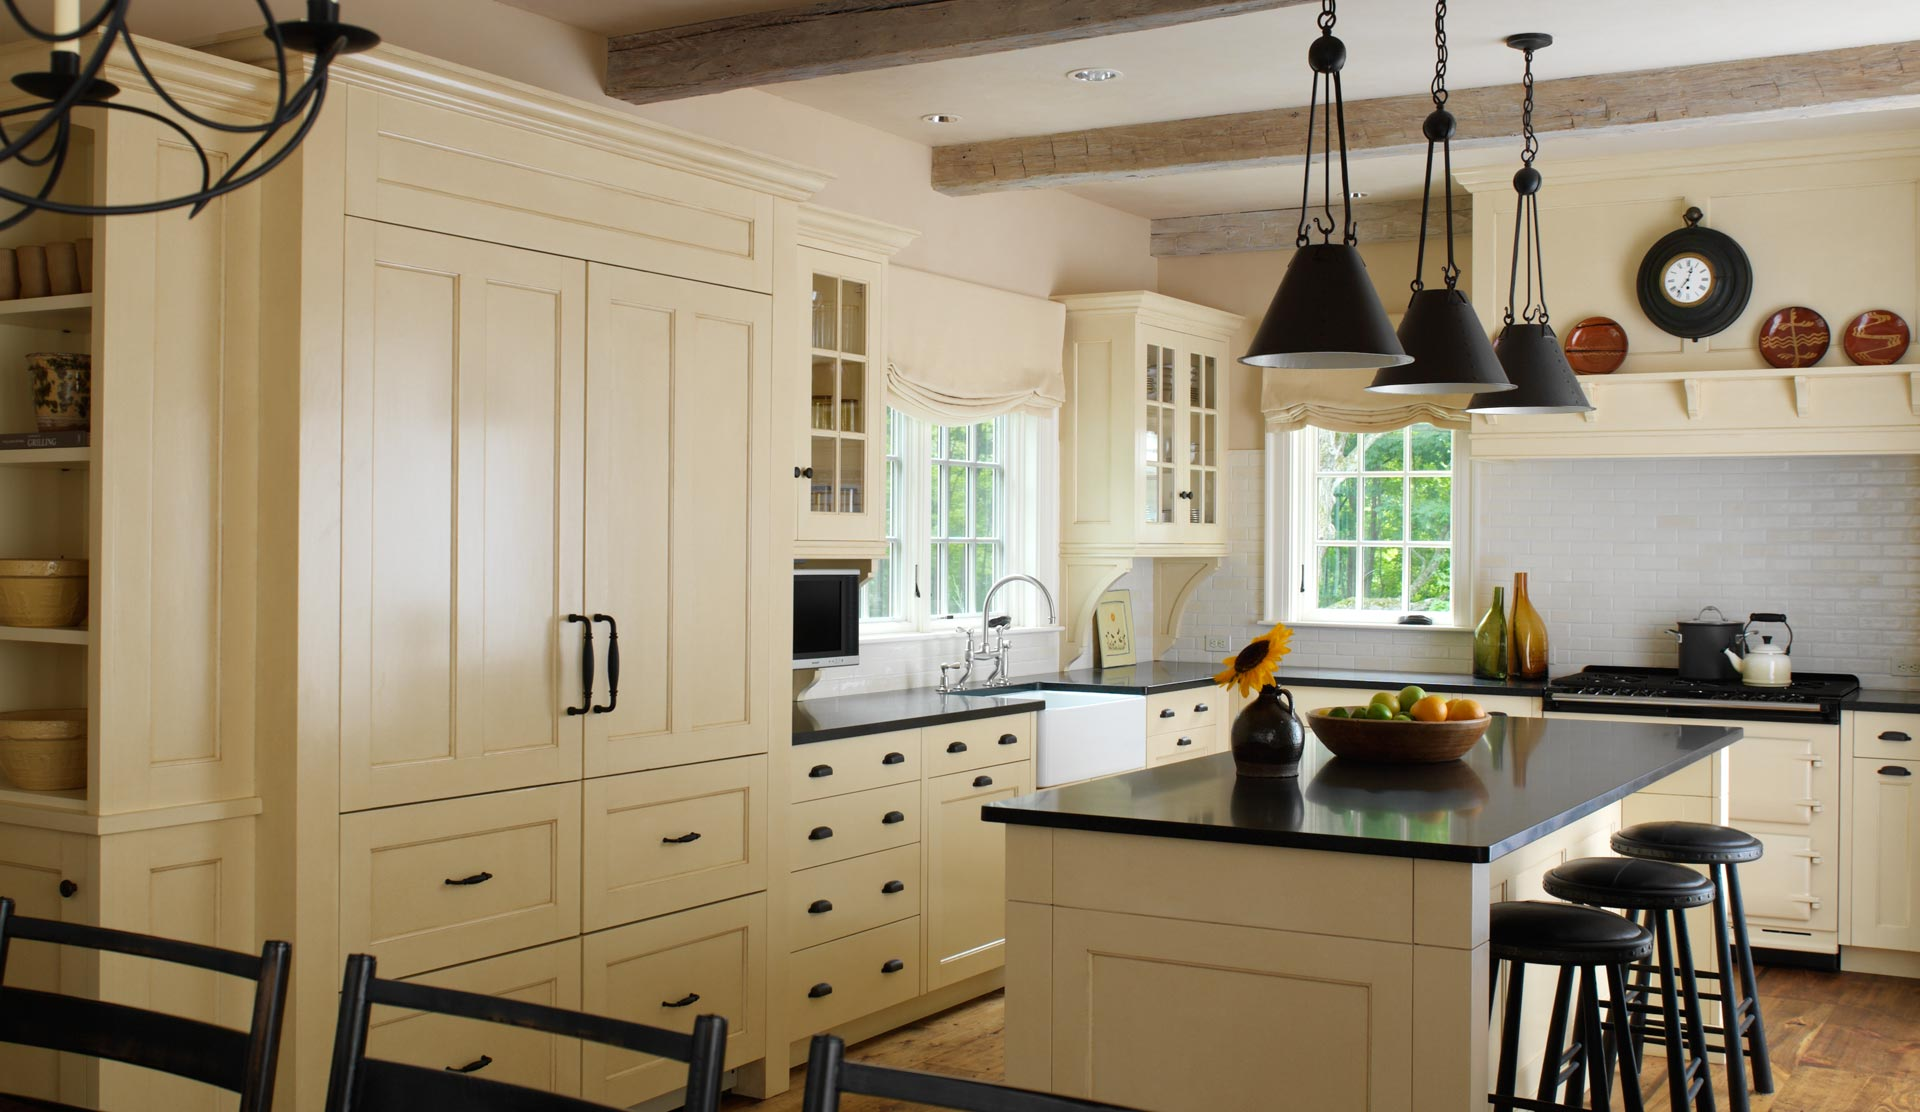 Kitchen Cabinets Kerala Elizabeth Jahn Architecture Country House Interior